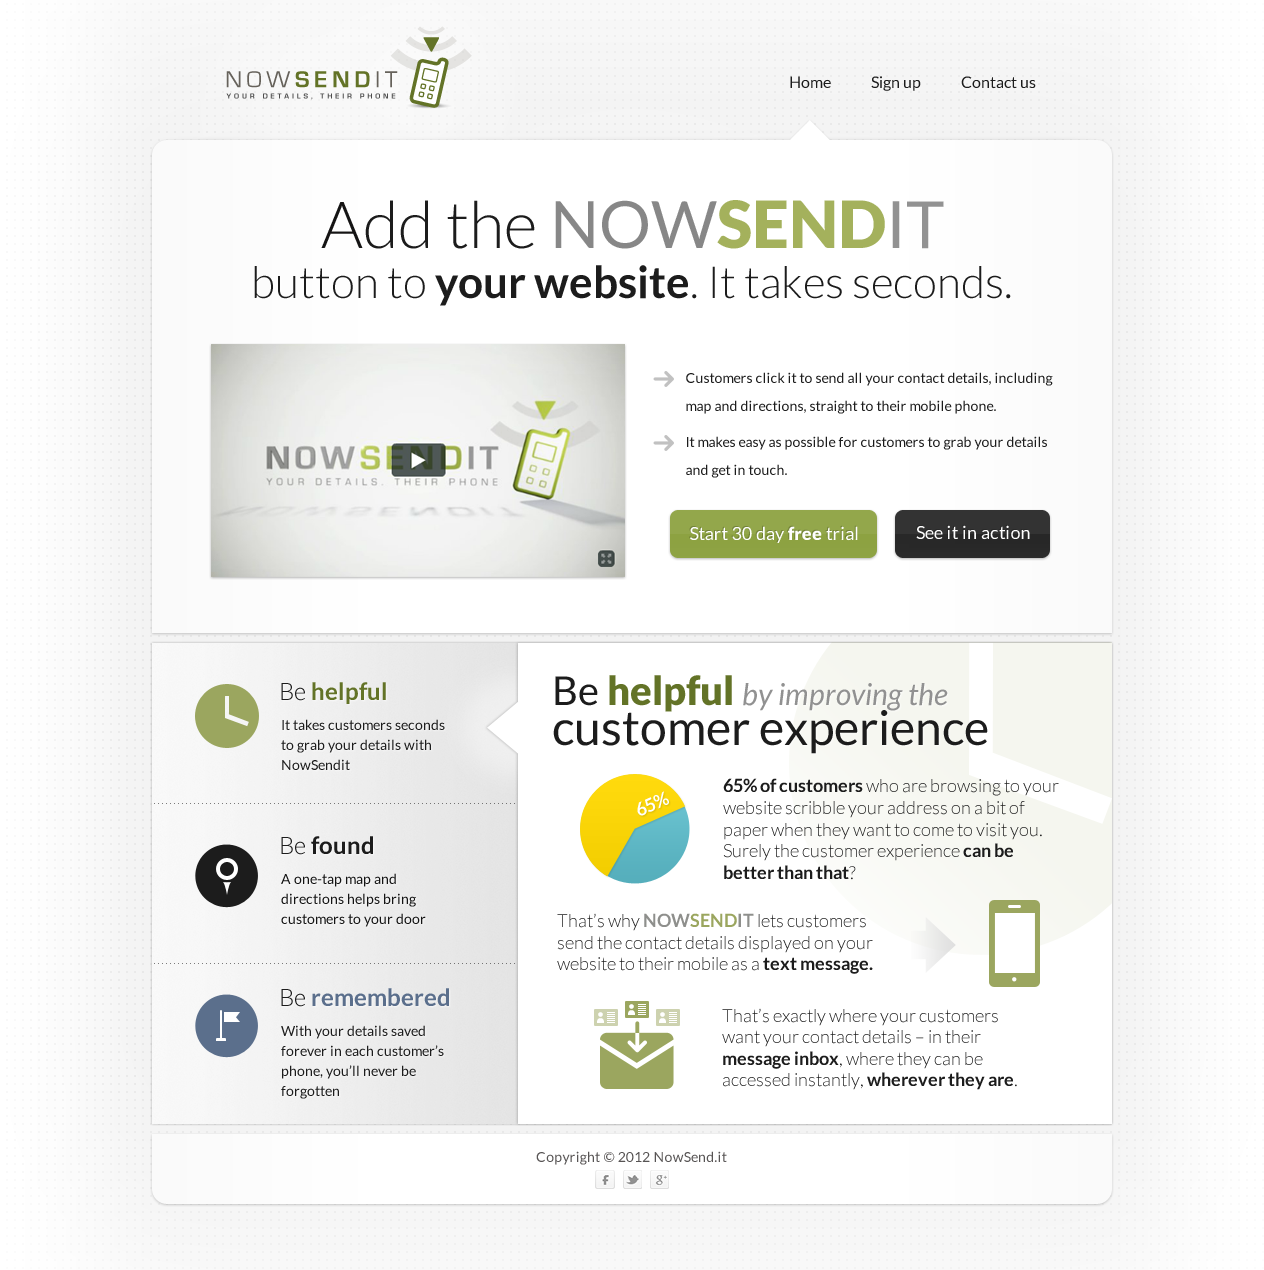 NEW DESIGN DIRECTION FOR WEB 2.0 SITE